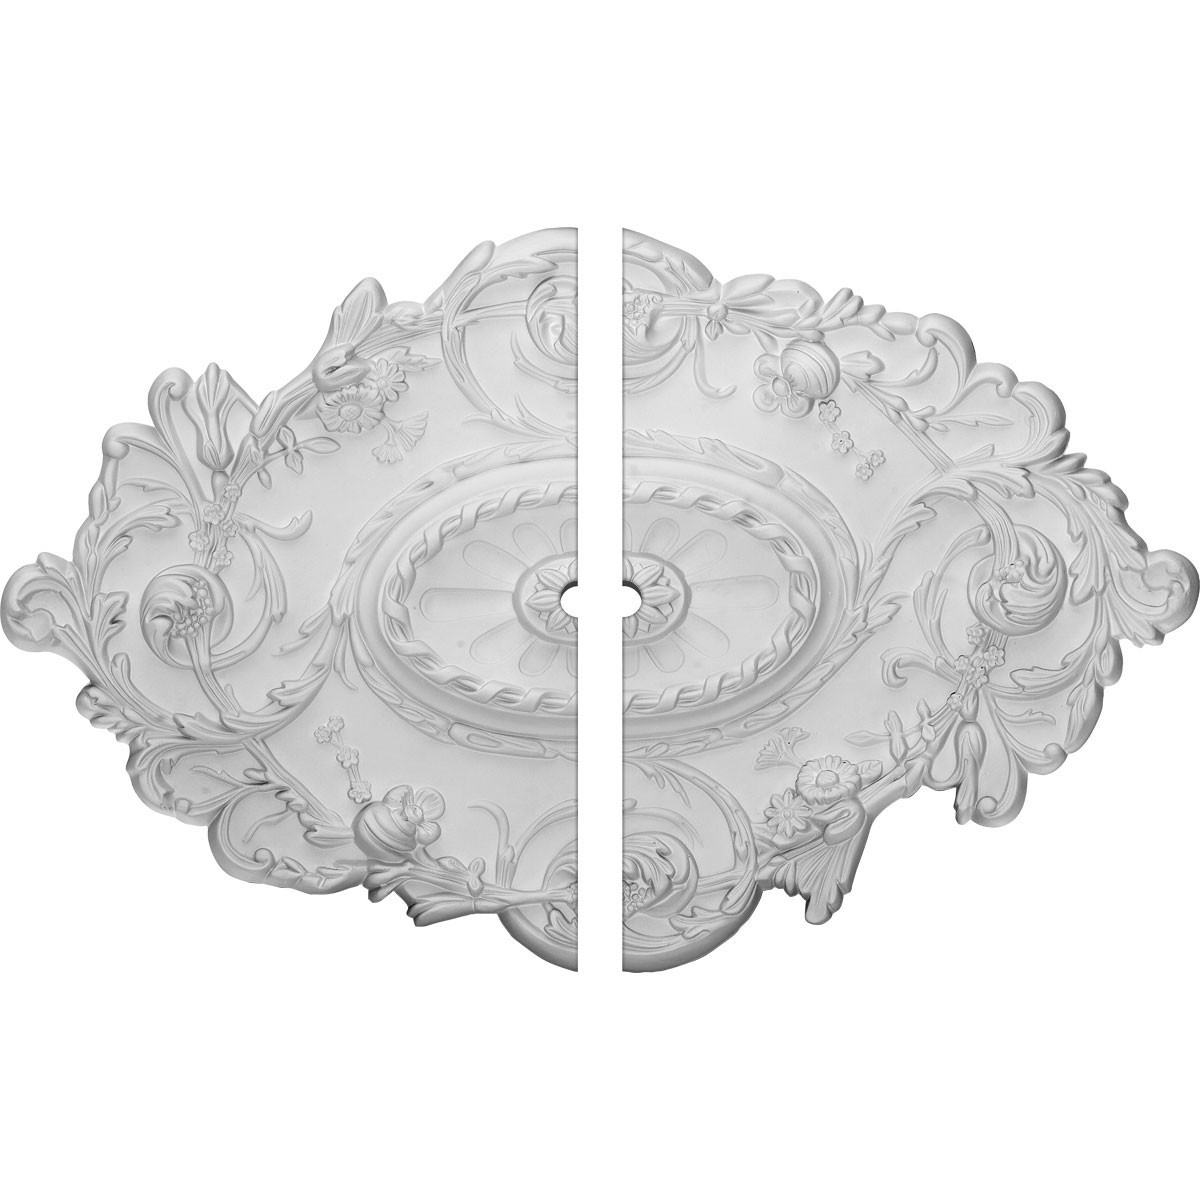 """EM-CM30SG2-01500 - 30 1/2""""W x 20""""H x 1 1/2""""ID x 1 1/2""""P Strasbourg Ceiling Medallion, Two Piece (Fits Canopies up to 1 1/2"""")"""